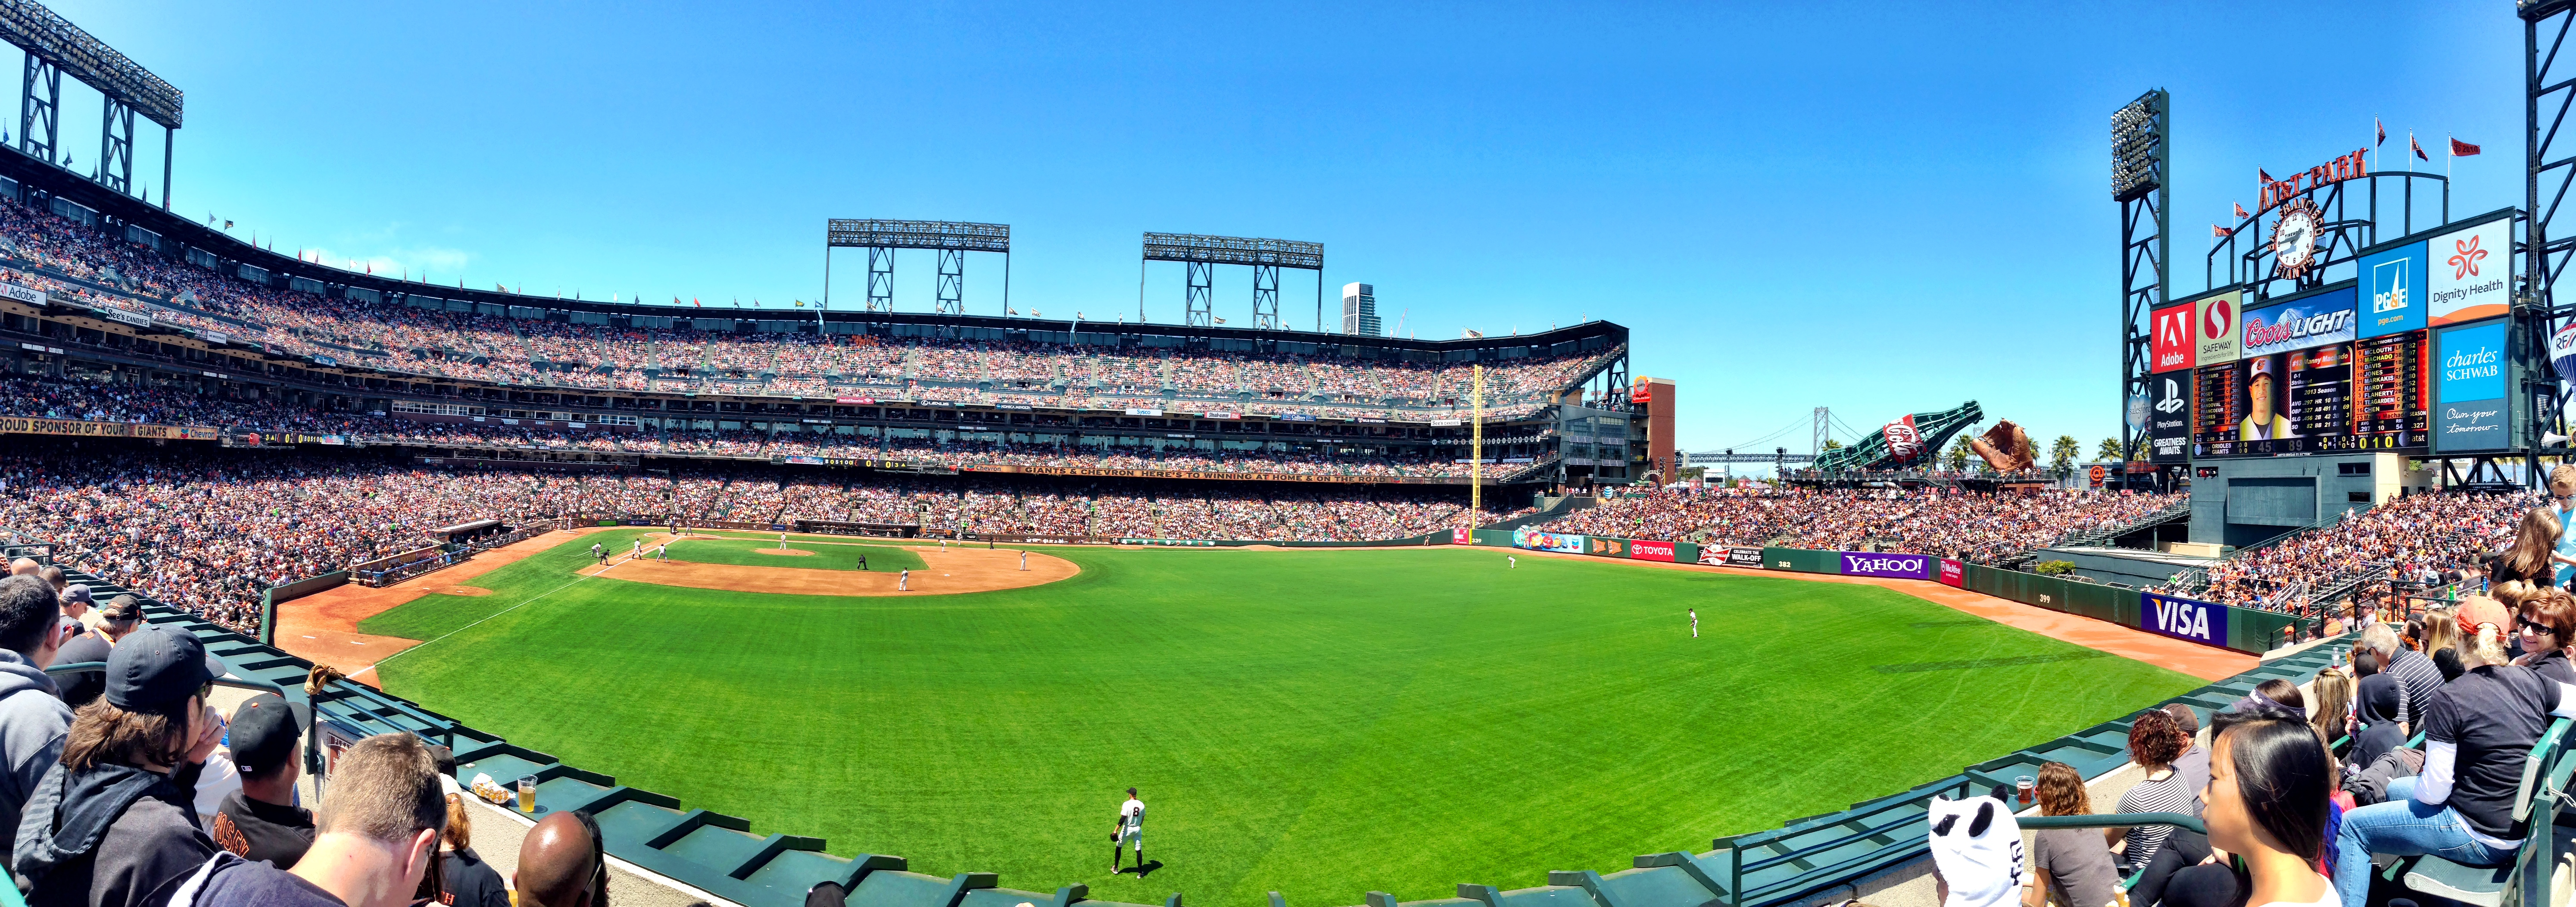 Visiting ATT Park in San Francisco